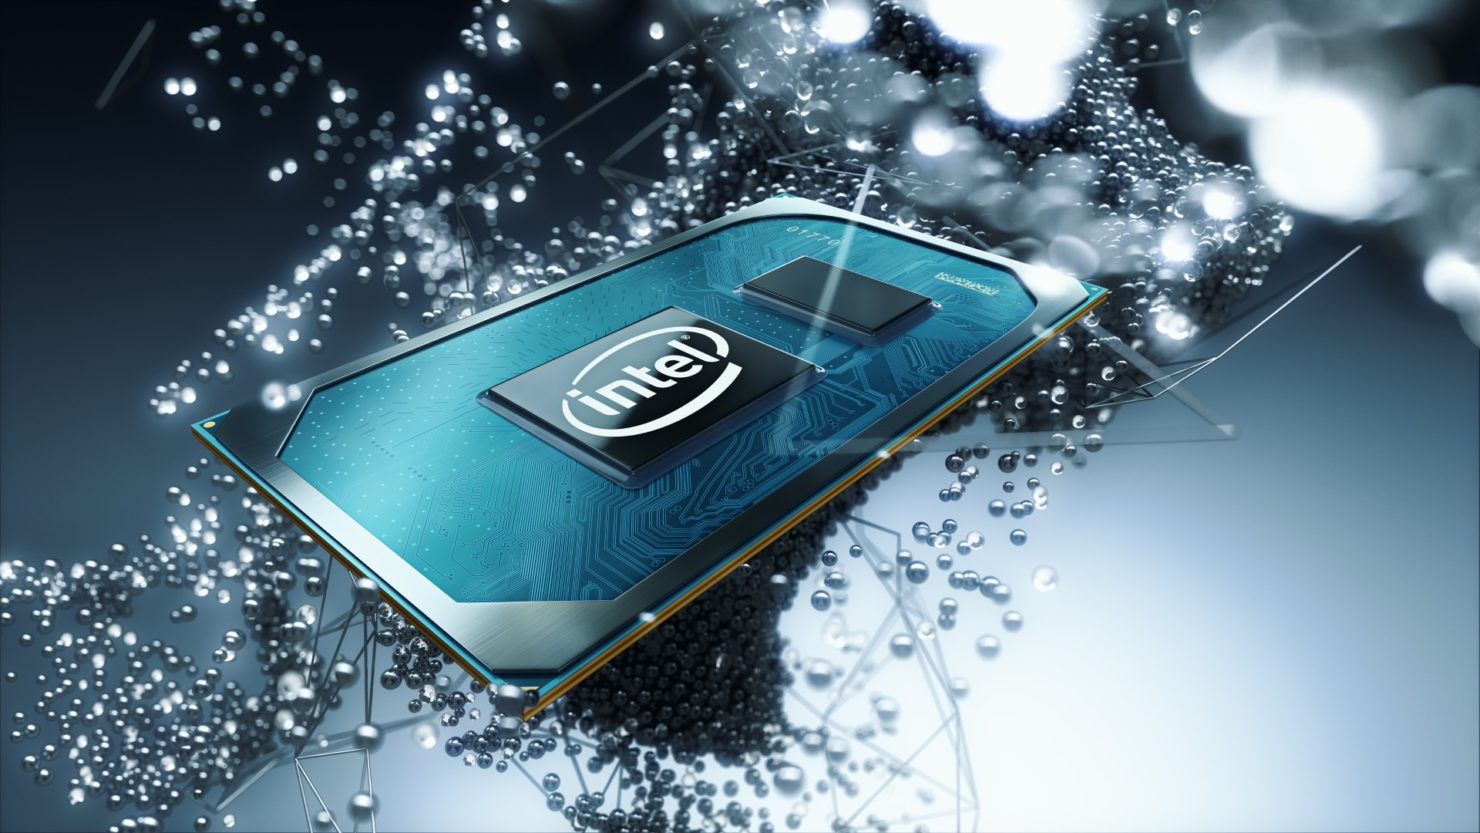 intel's-11th-gen-tiger-lake-h-notebooks-listed-online-with-up-to-core-i9-11980hk-8-core-enthusiast-cpus